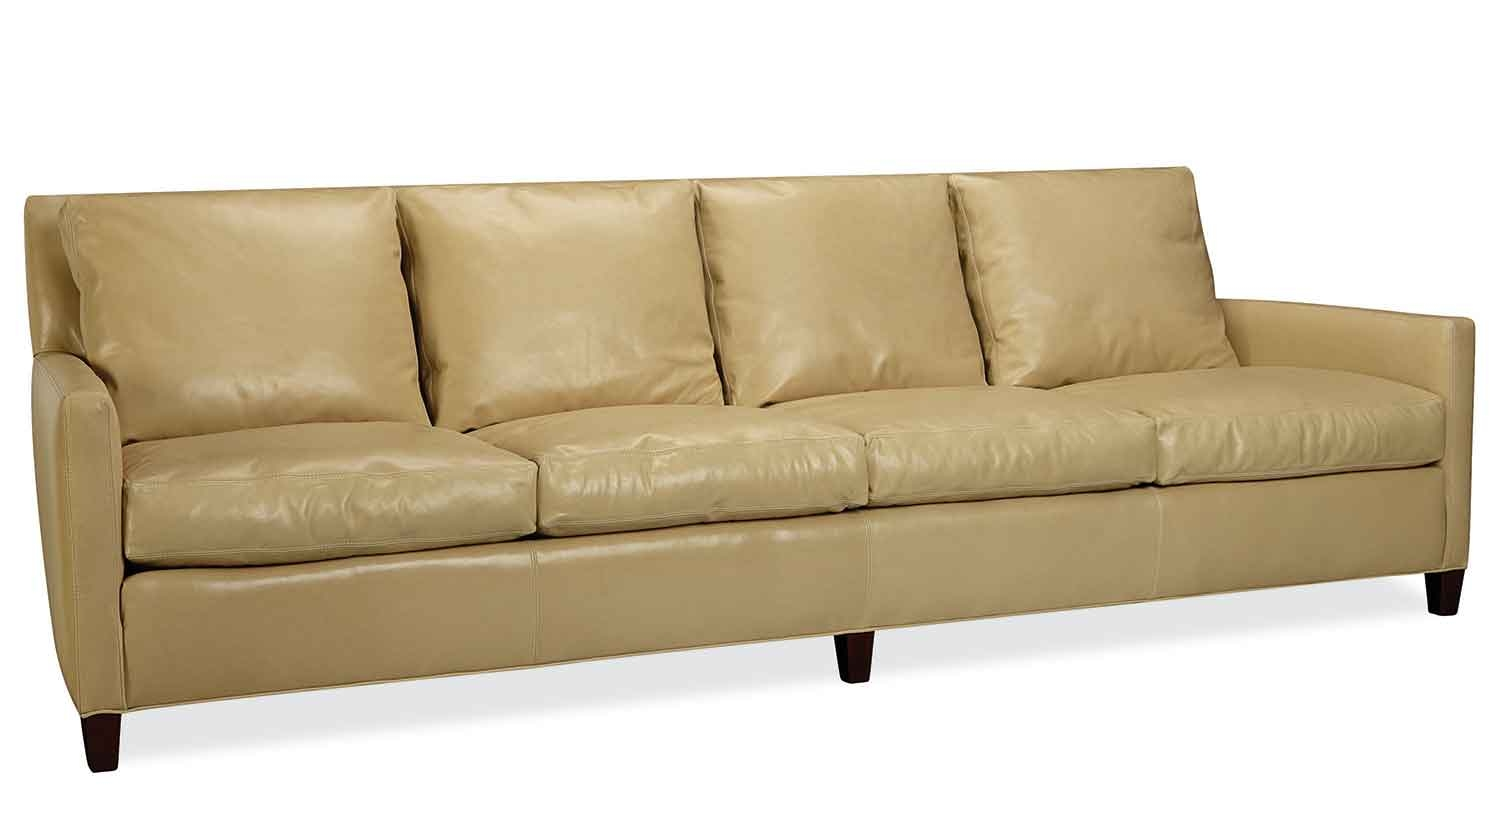 Circle Furniture Maddie 4 Seat Sofa Long Sofas Boston Circle With Regard To 4 Seat Sofas (Image 4 of 15)